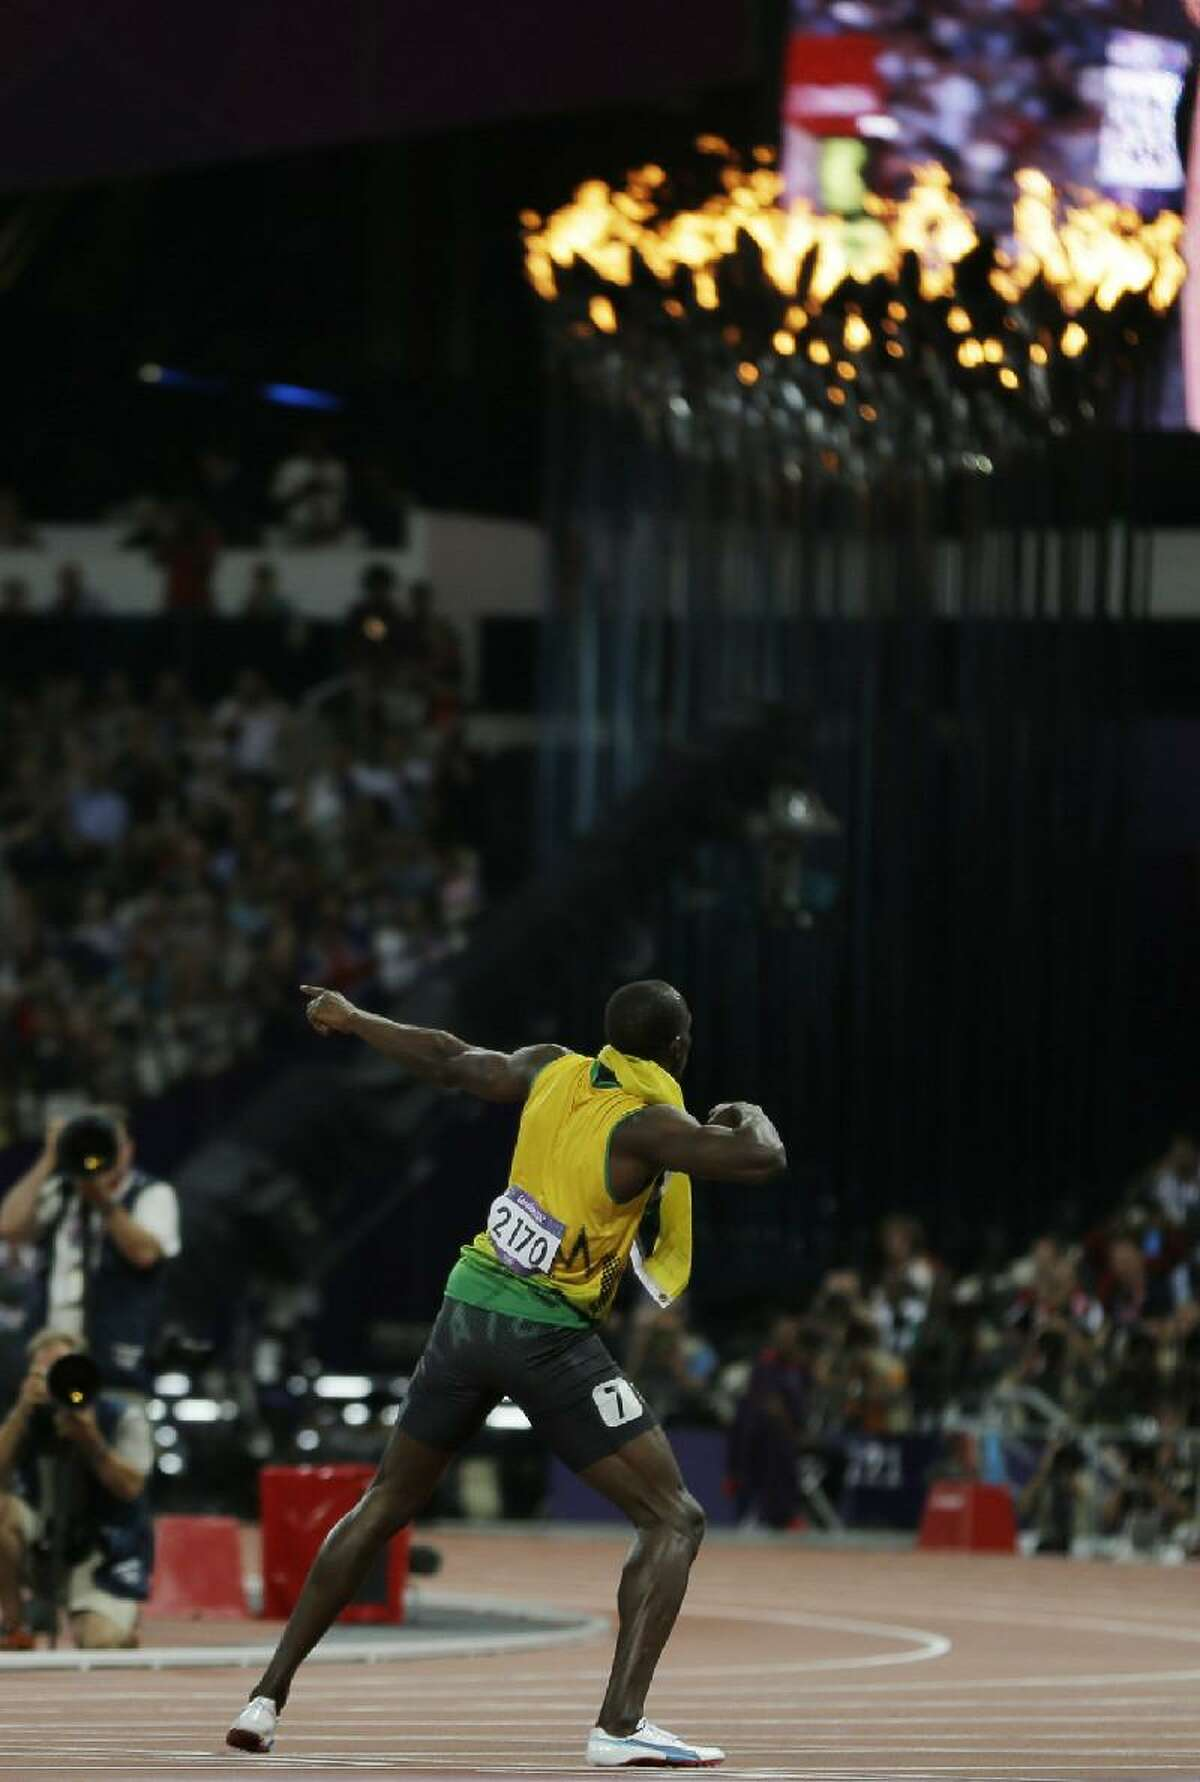 ASSOCIATED PRESS Jamaica's Usain Bolt celebrates winning the gold medal in front of the Olympic flame after the men's 200-meter final during the athletics in the Olympic Stadium at the 2012 Summer Olympics Thursday in London.